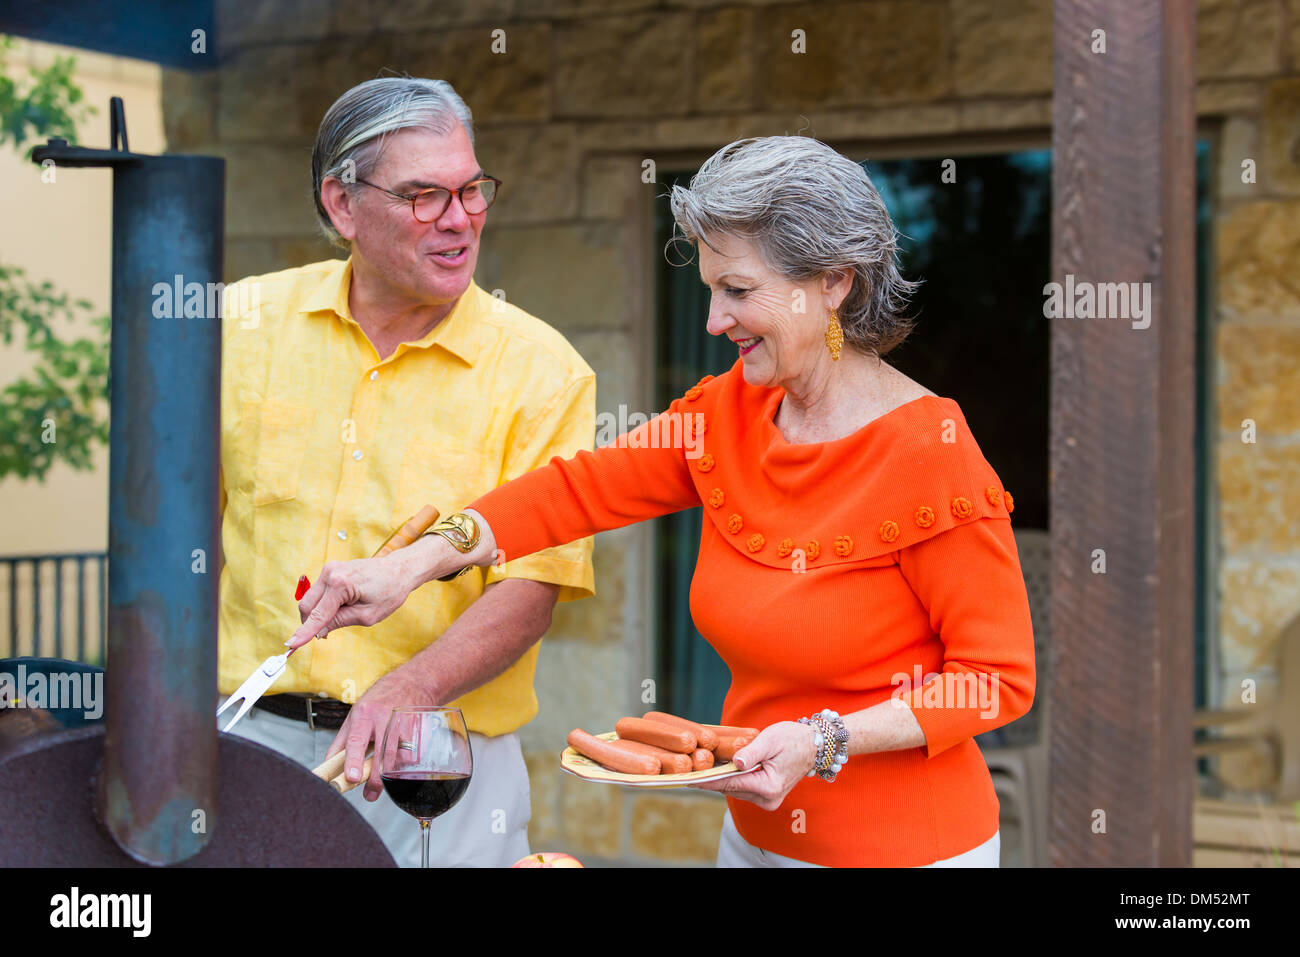 Mature couple preparing a barbecue in the back of their home, Texas, USA. Woman is putting sausages on the grill. - Stock Image